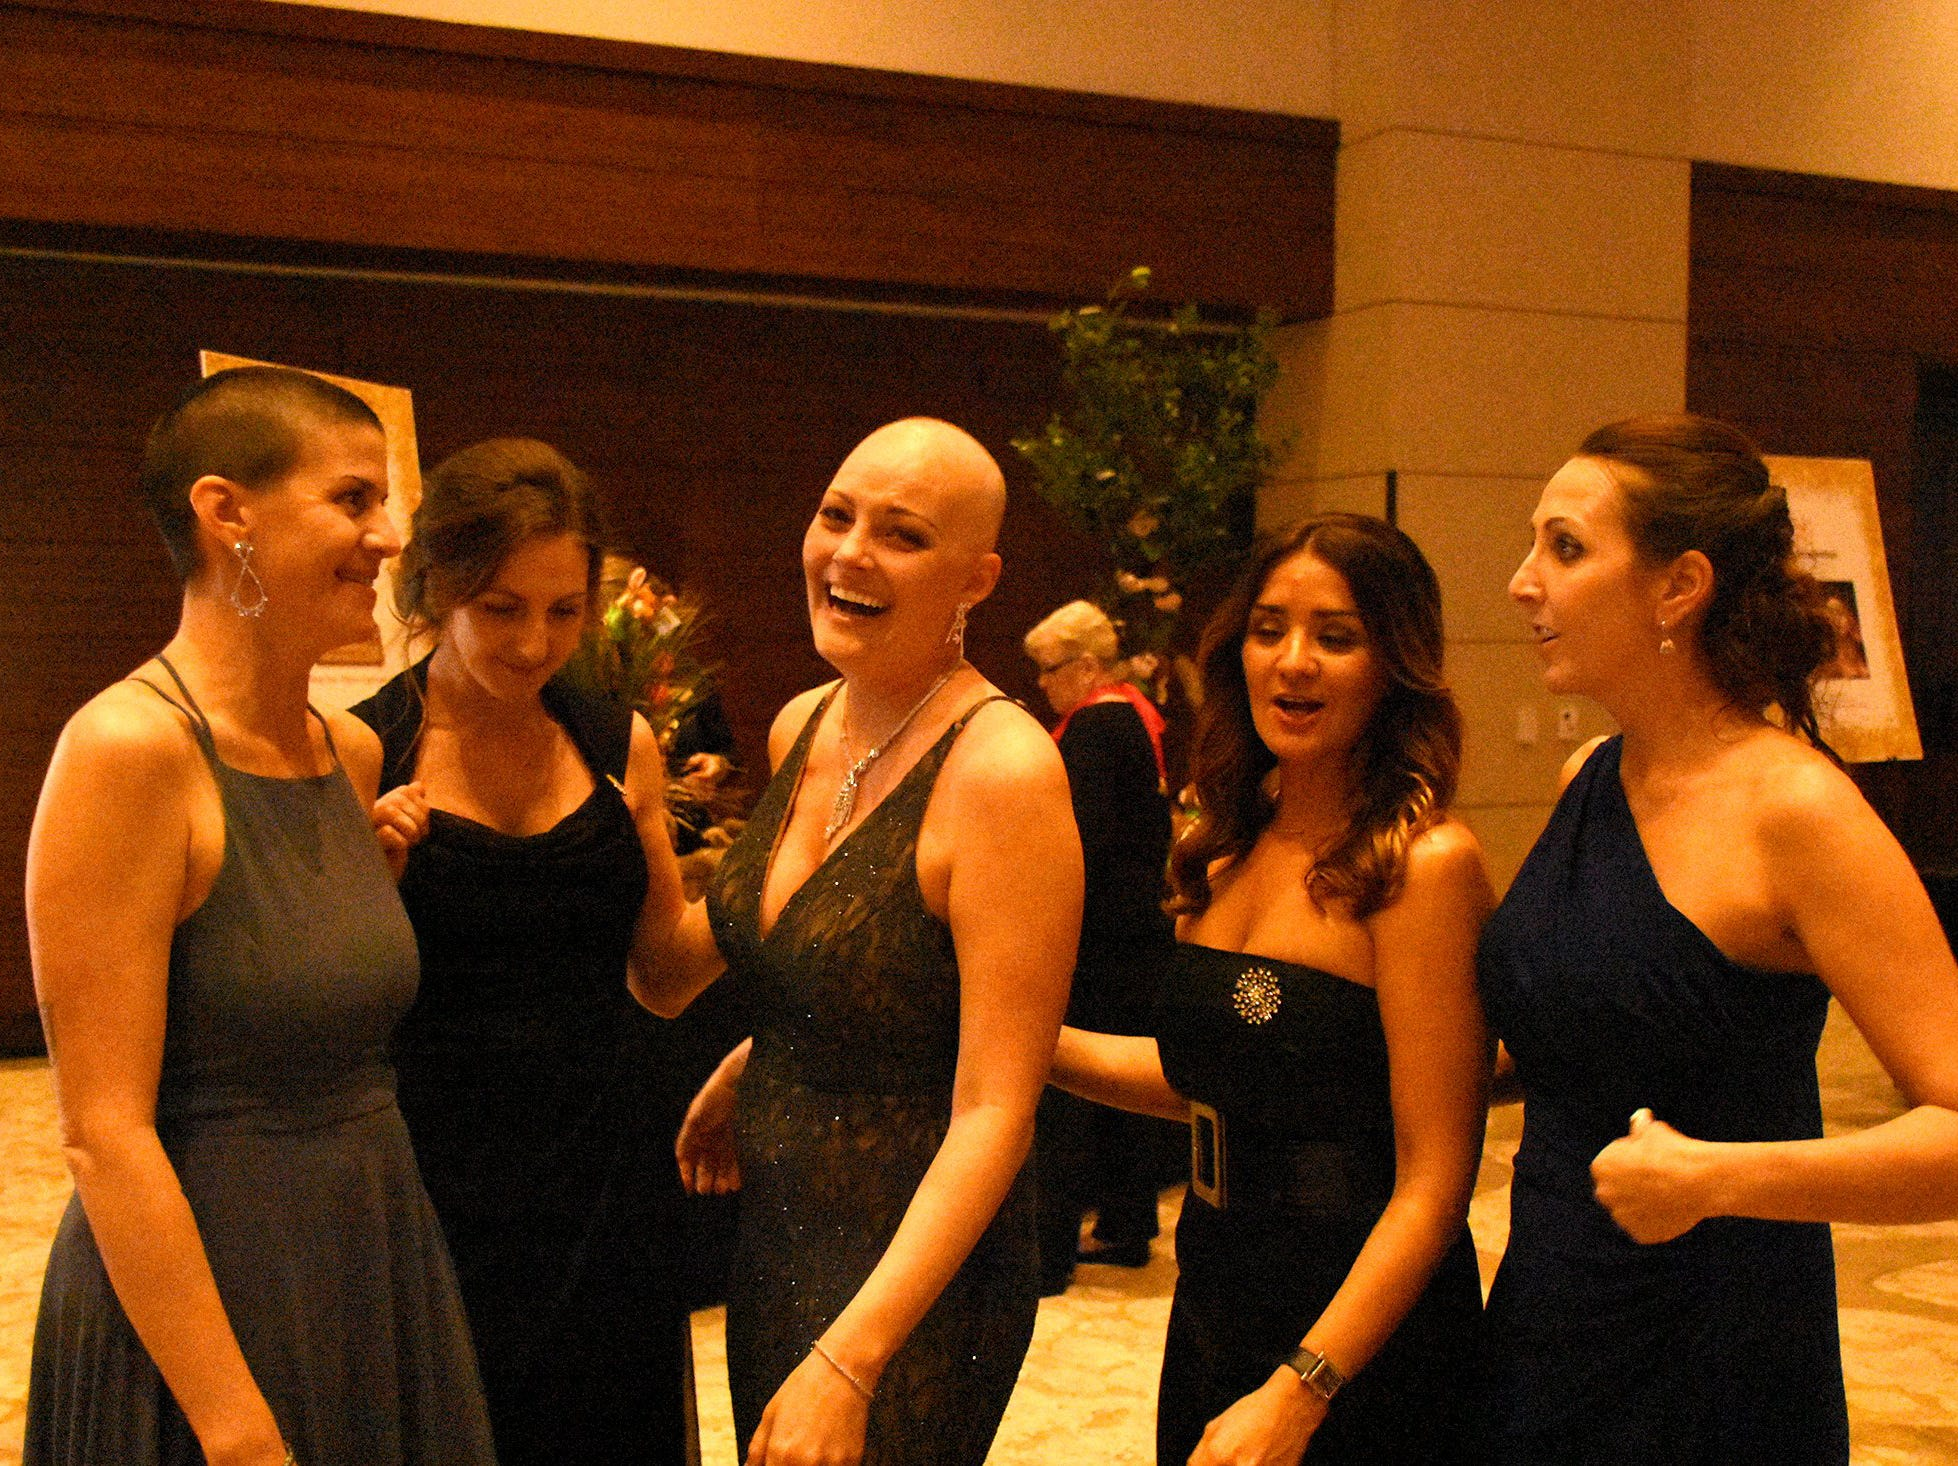 Lauren Ross, center, shared her struggle with the crowd. The Marco Island unit of the American Cancer Society held the Imagination Ball Friday evening at the JW Marriott hotel, raising funds to continue the fight against cancer.